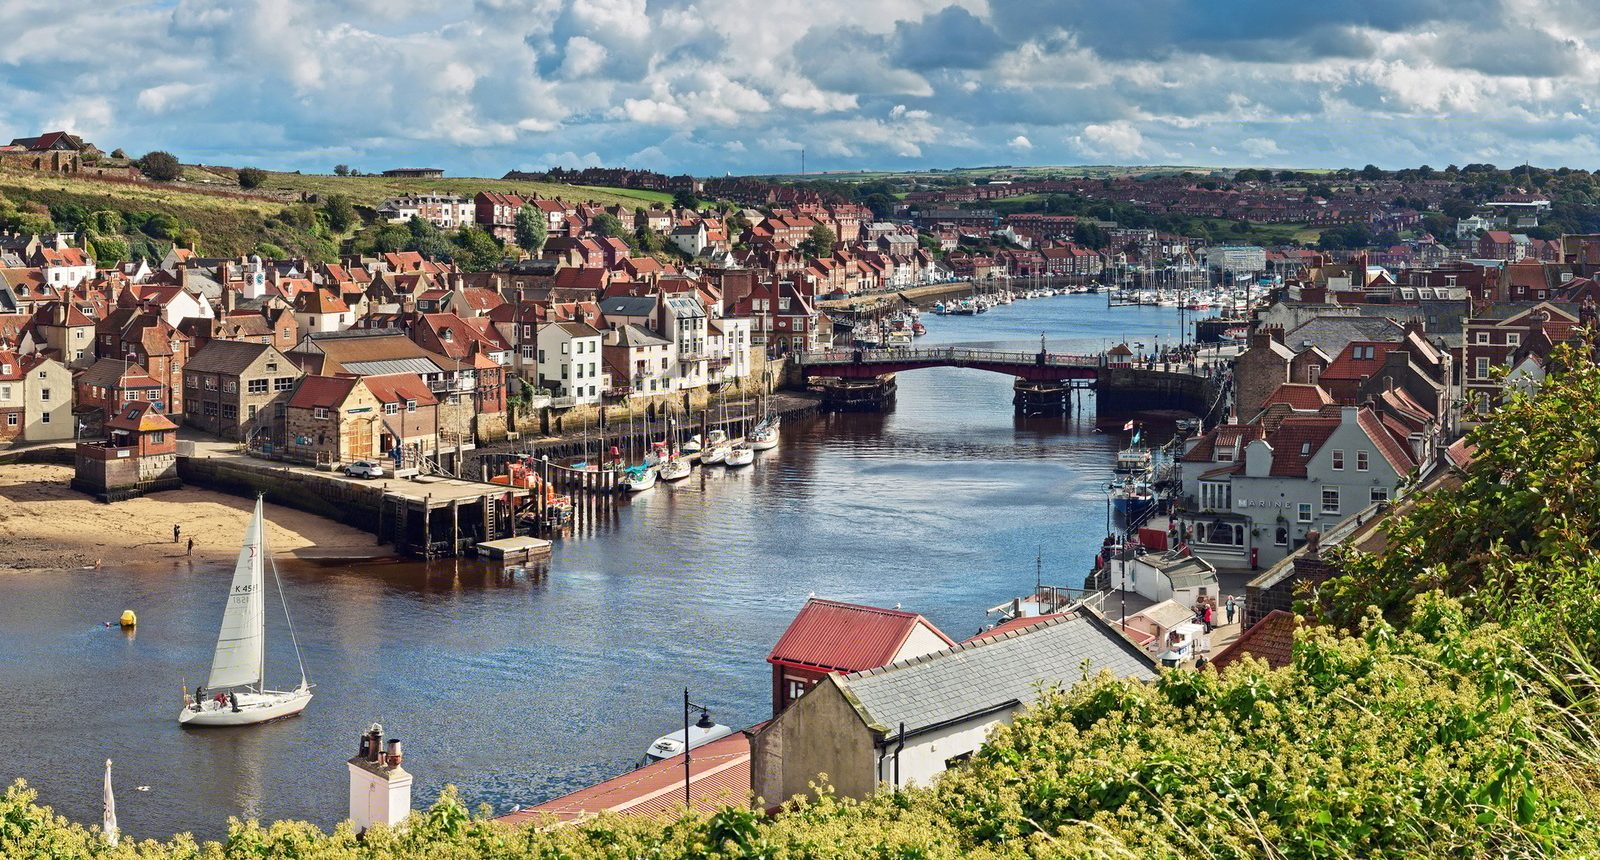 River and bridge whitby